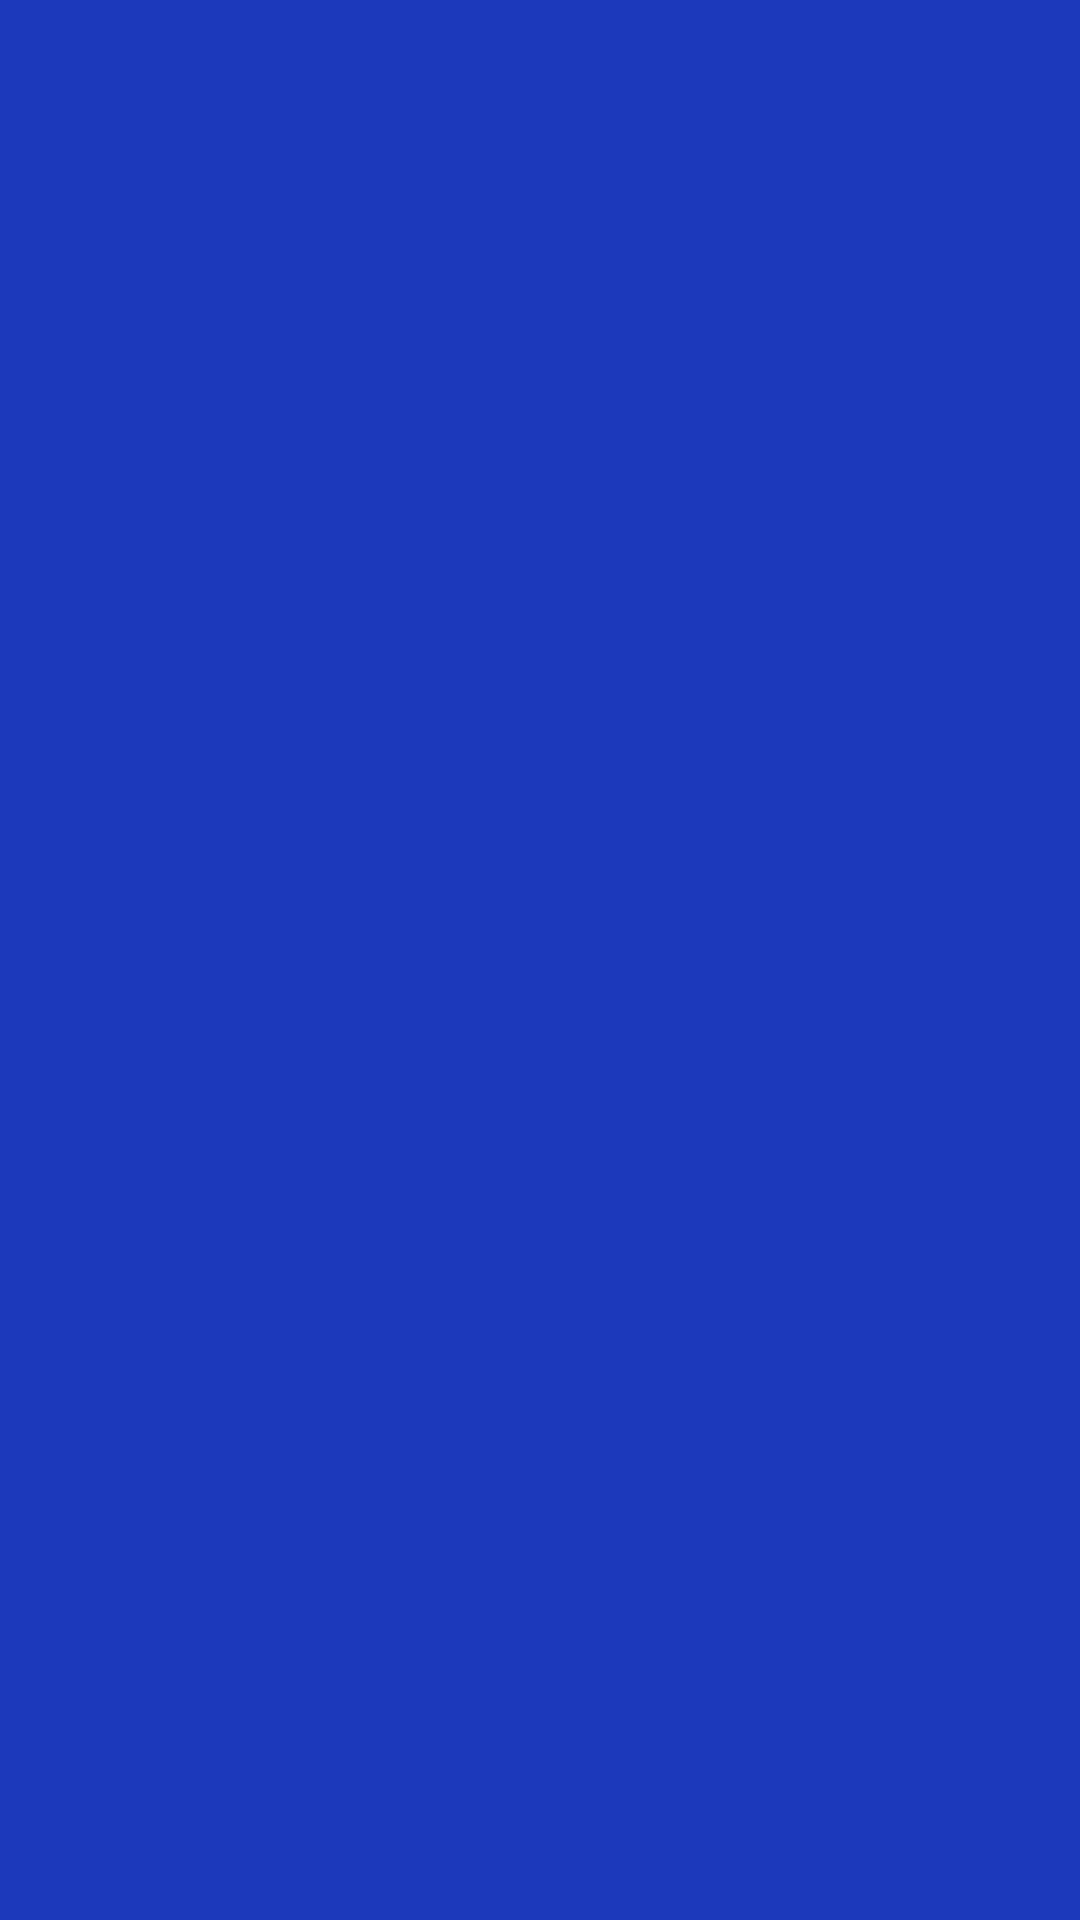 1080x1920 Persian Blue Solid Color Background